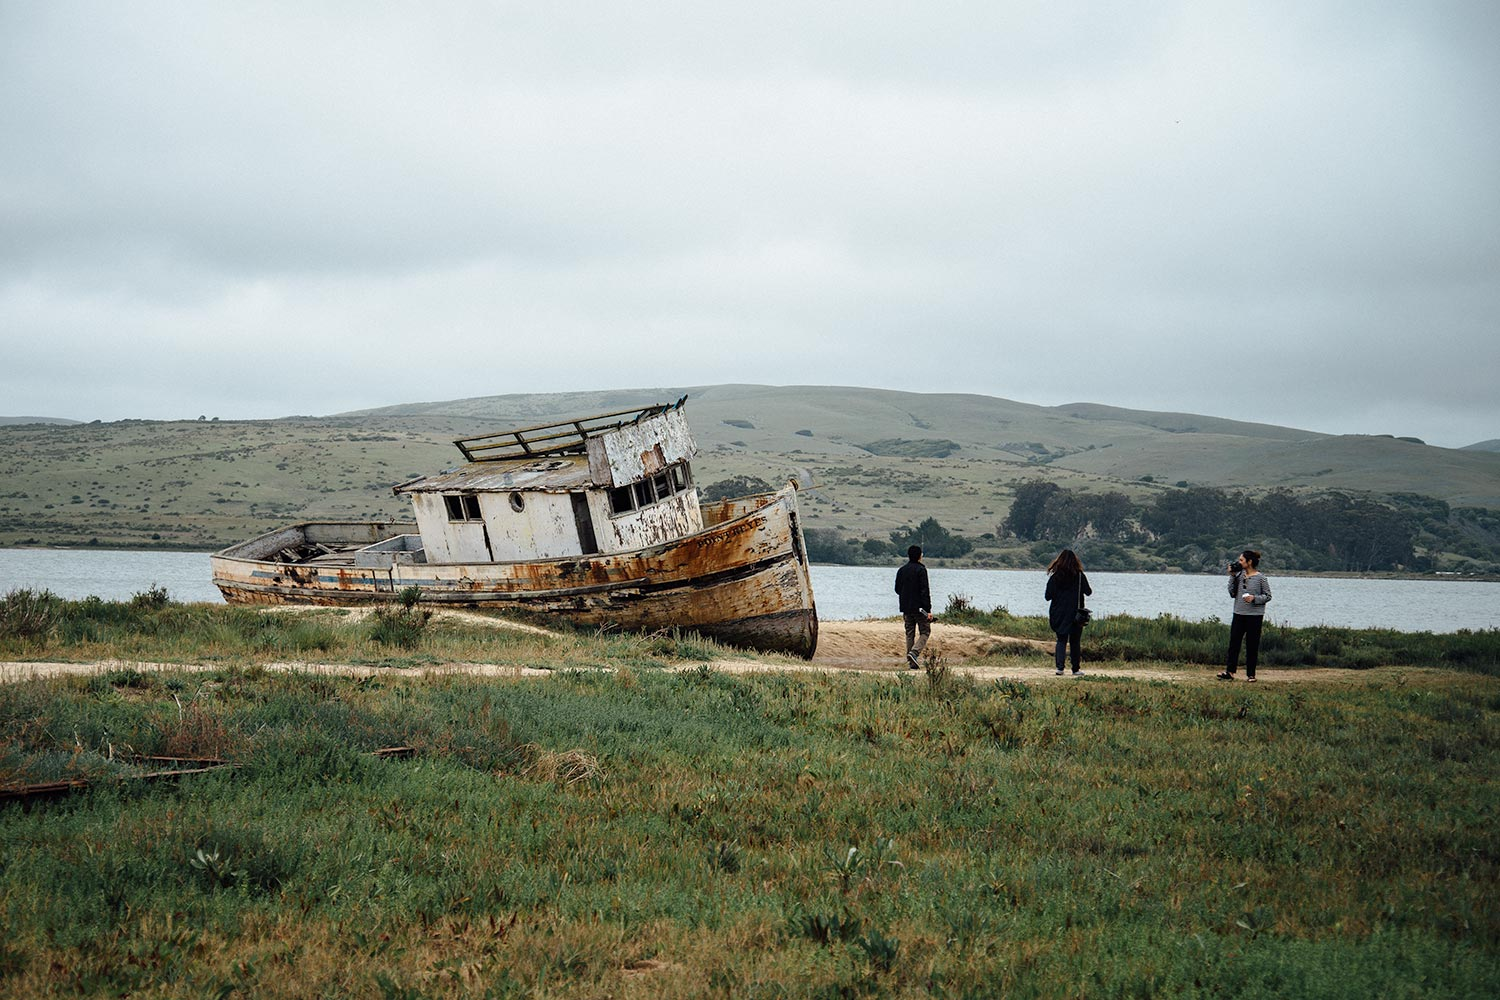 Old, abandoned ship